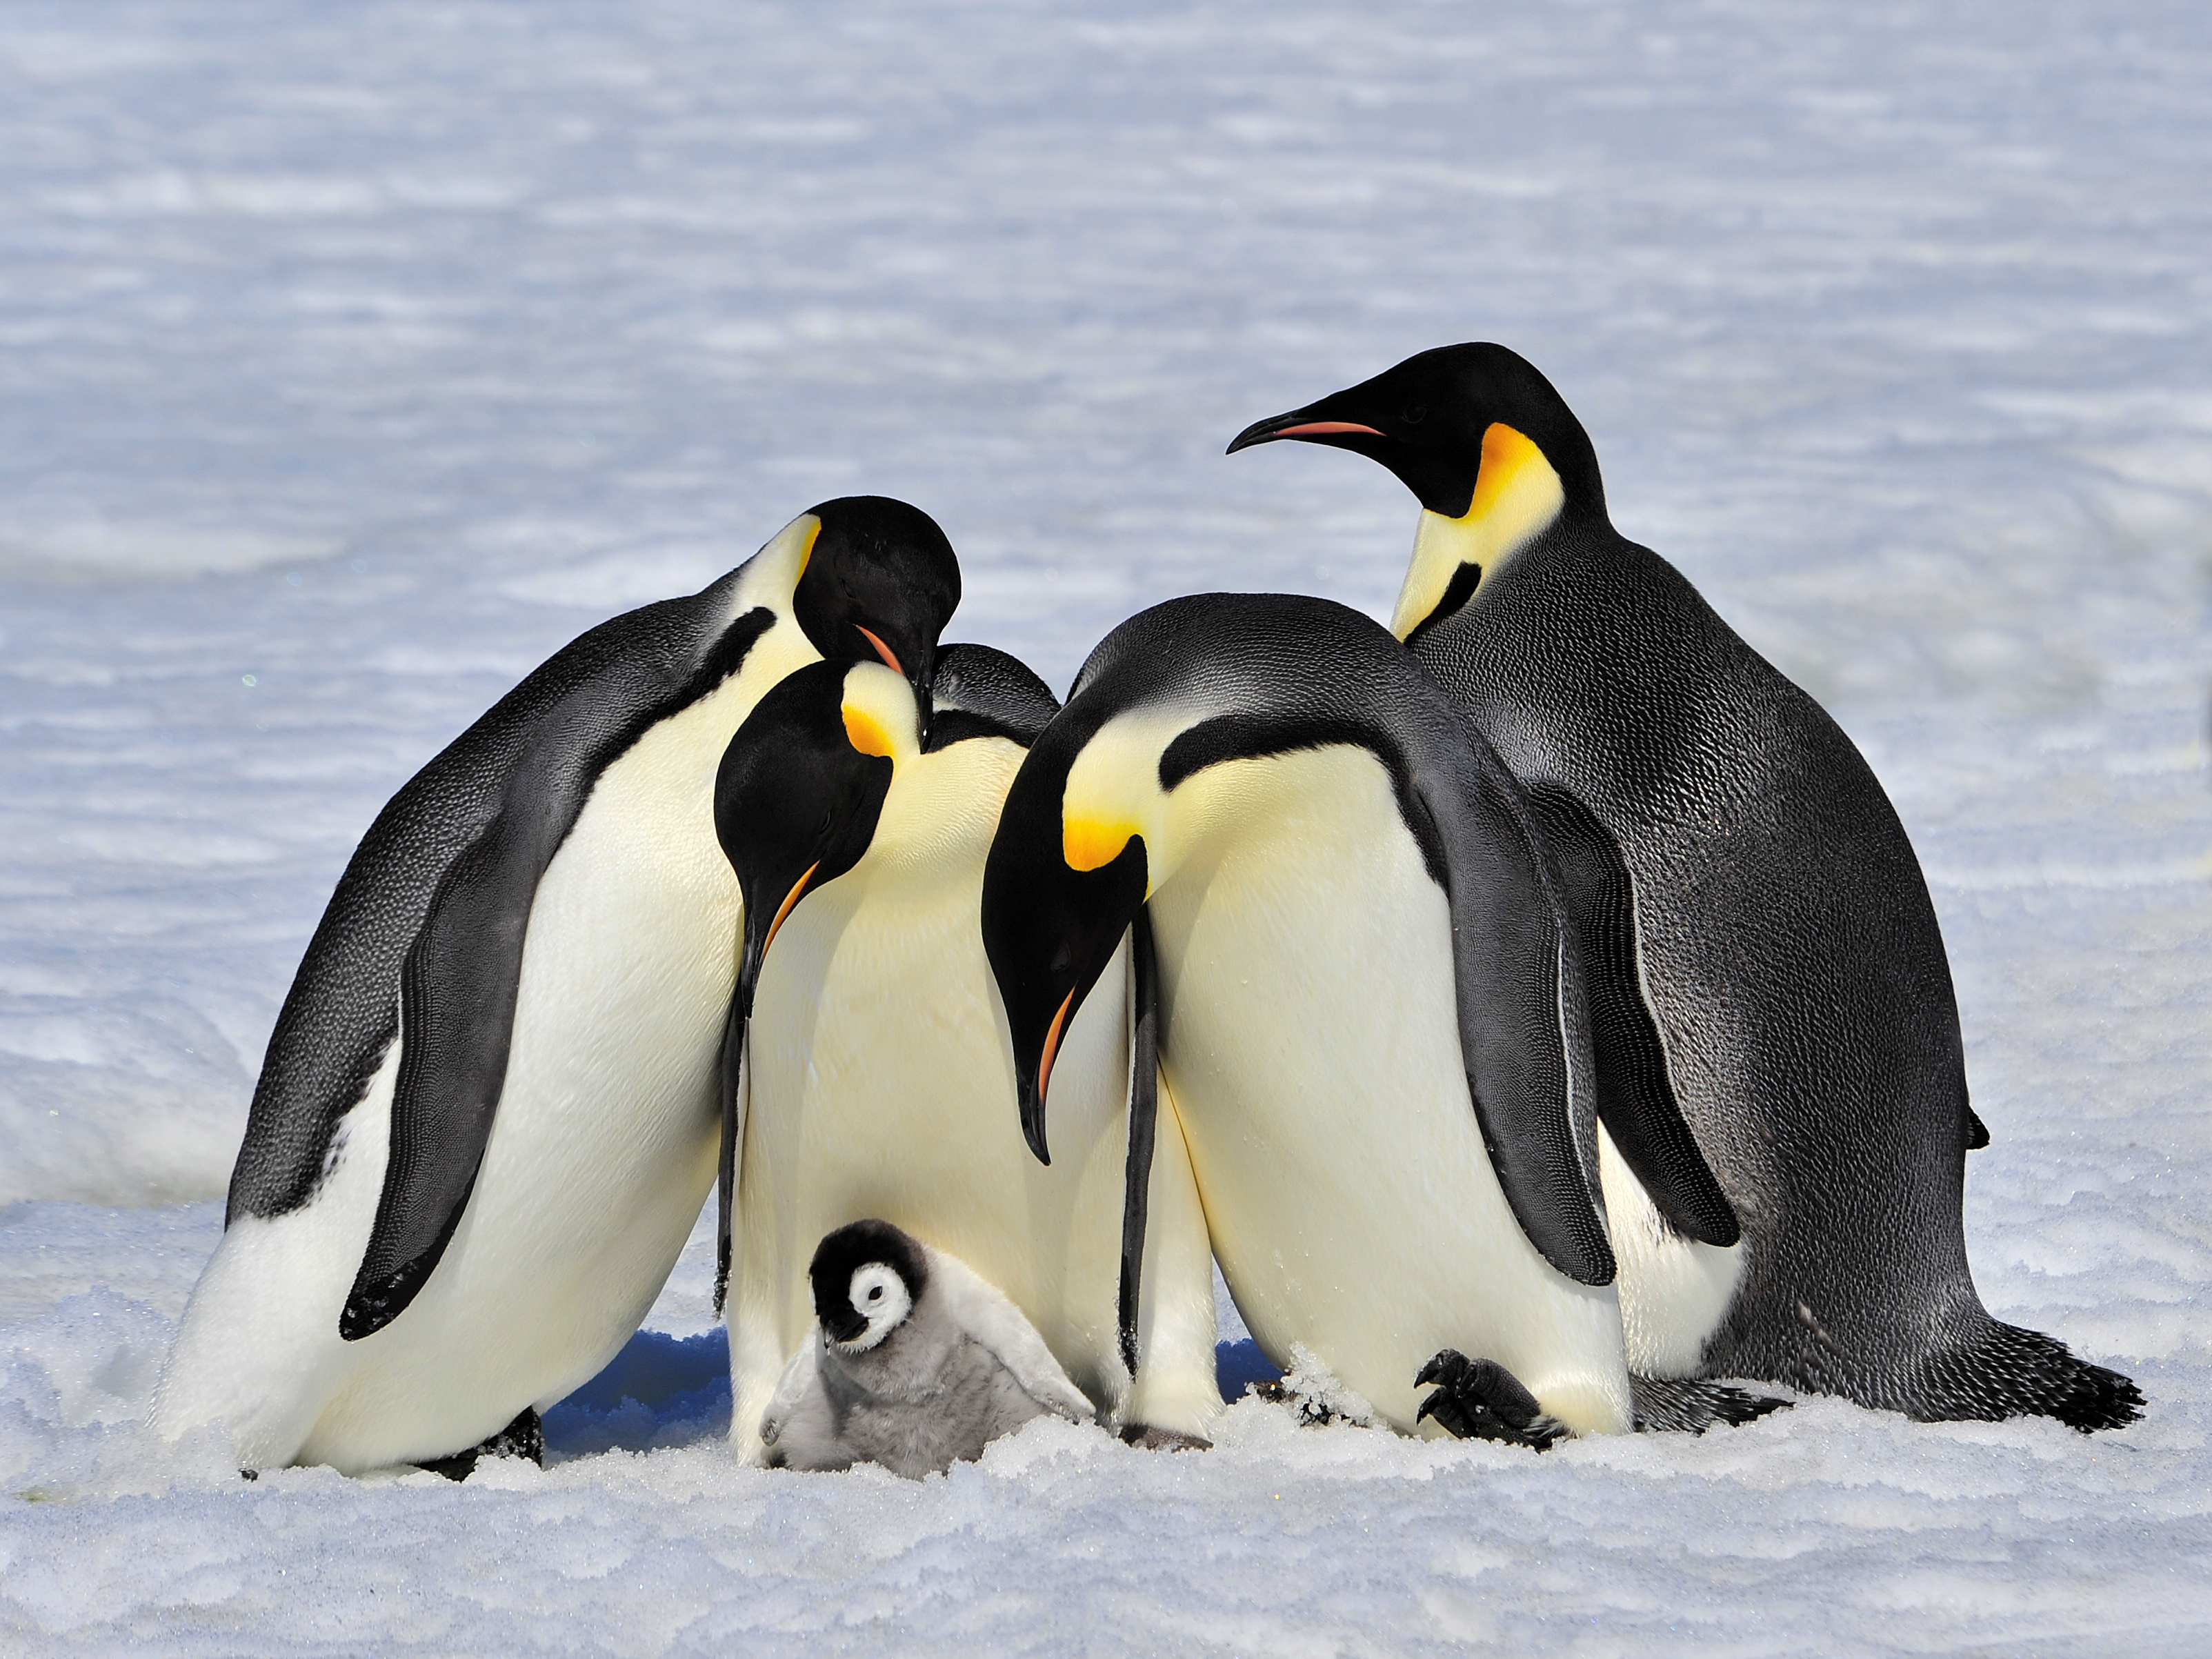 Emperor penguins.